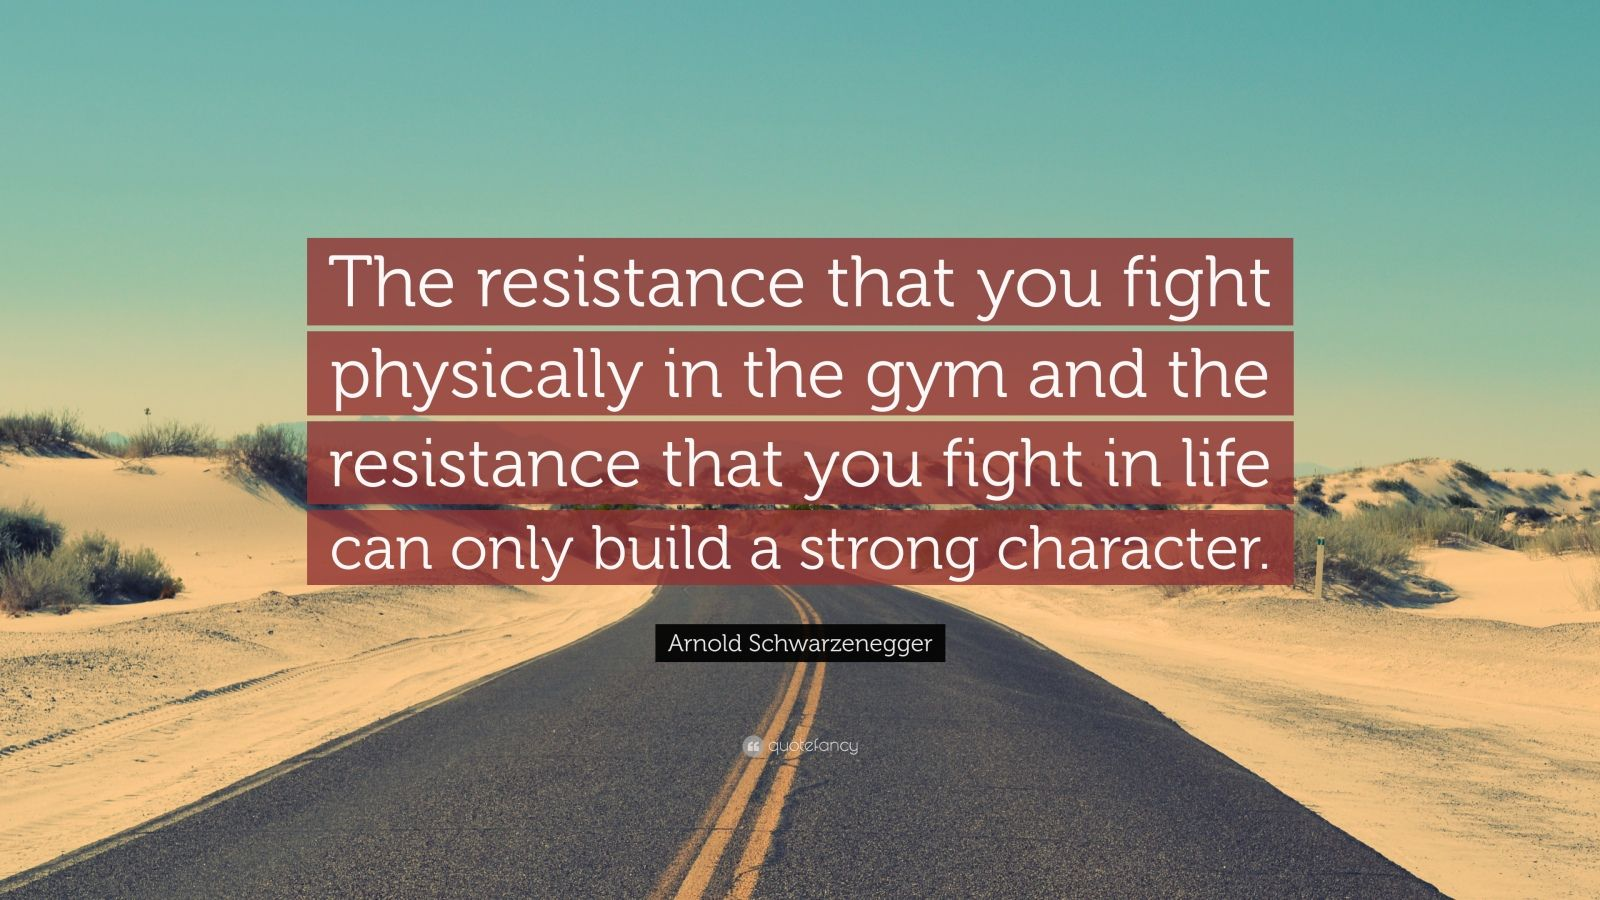 """Arnold Schwarzenegger Quote: """"The resistance that you fight physically in the gym and the resistance that you fight in life can only build a strong character."""""""